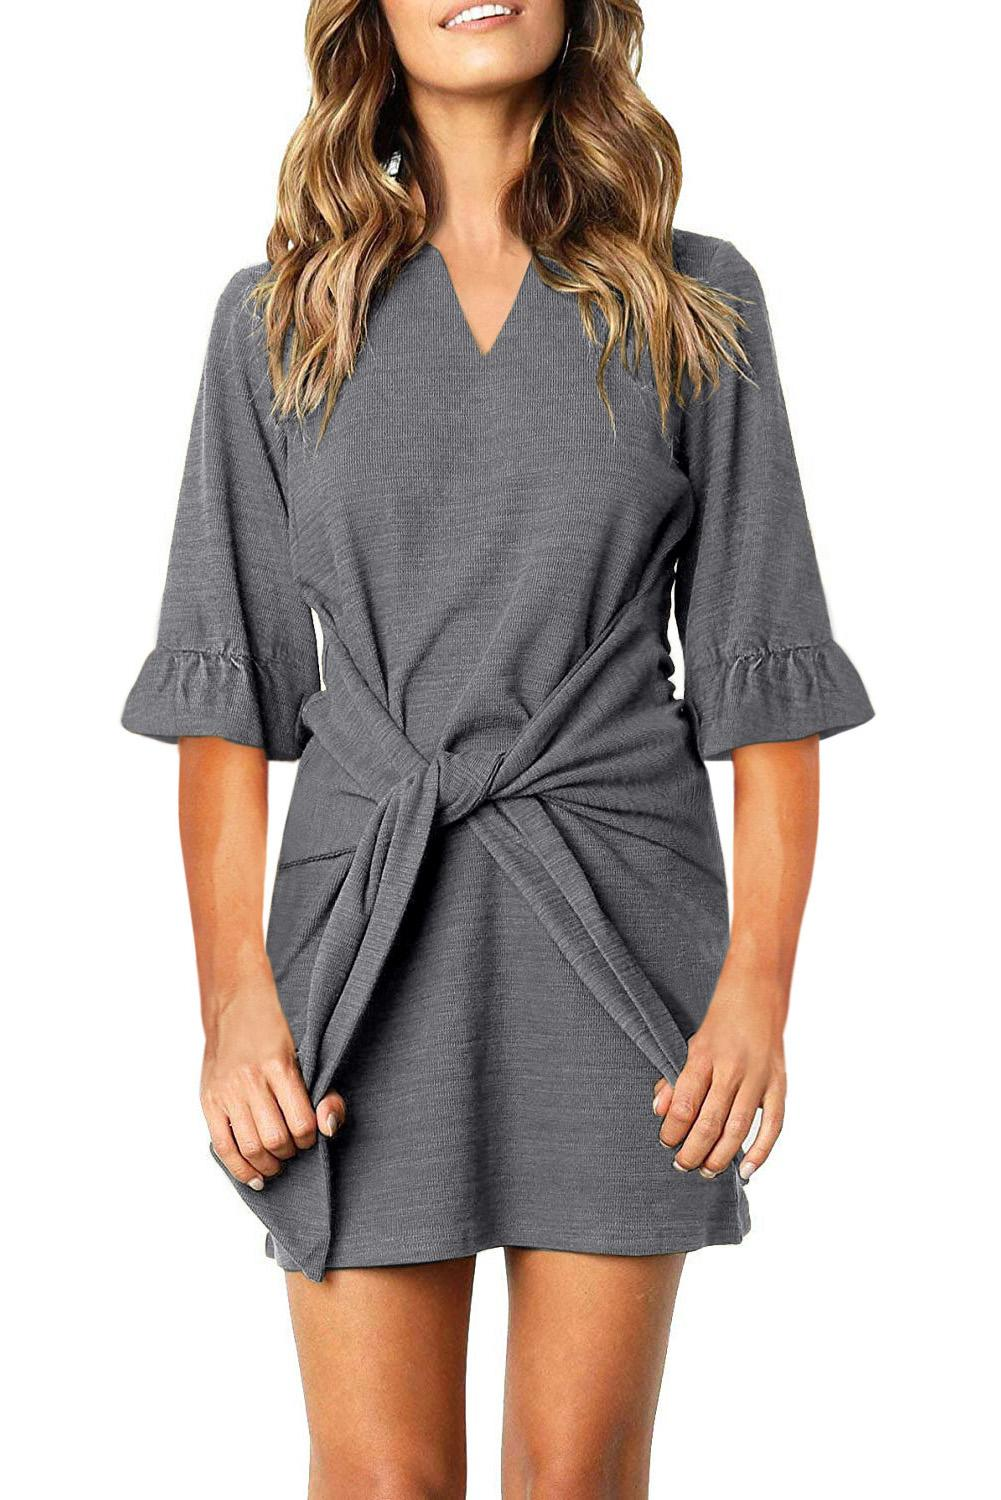 Gray V Neck Ruffled Sleeves Waist Tie Mini Dress